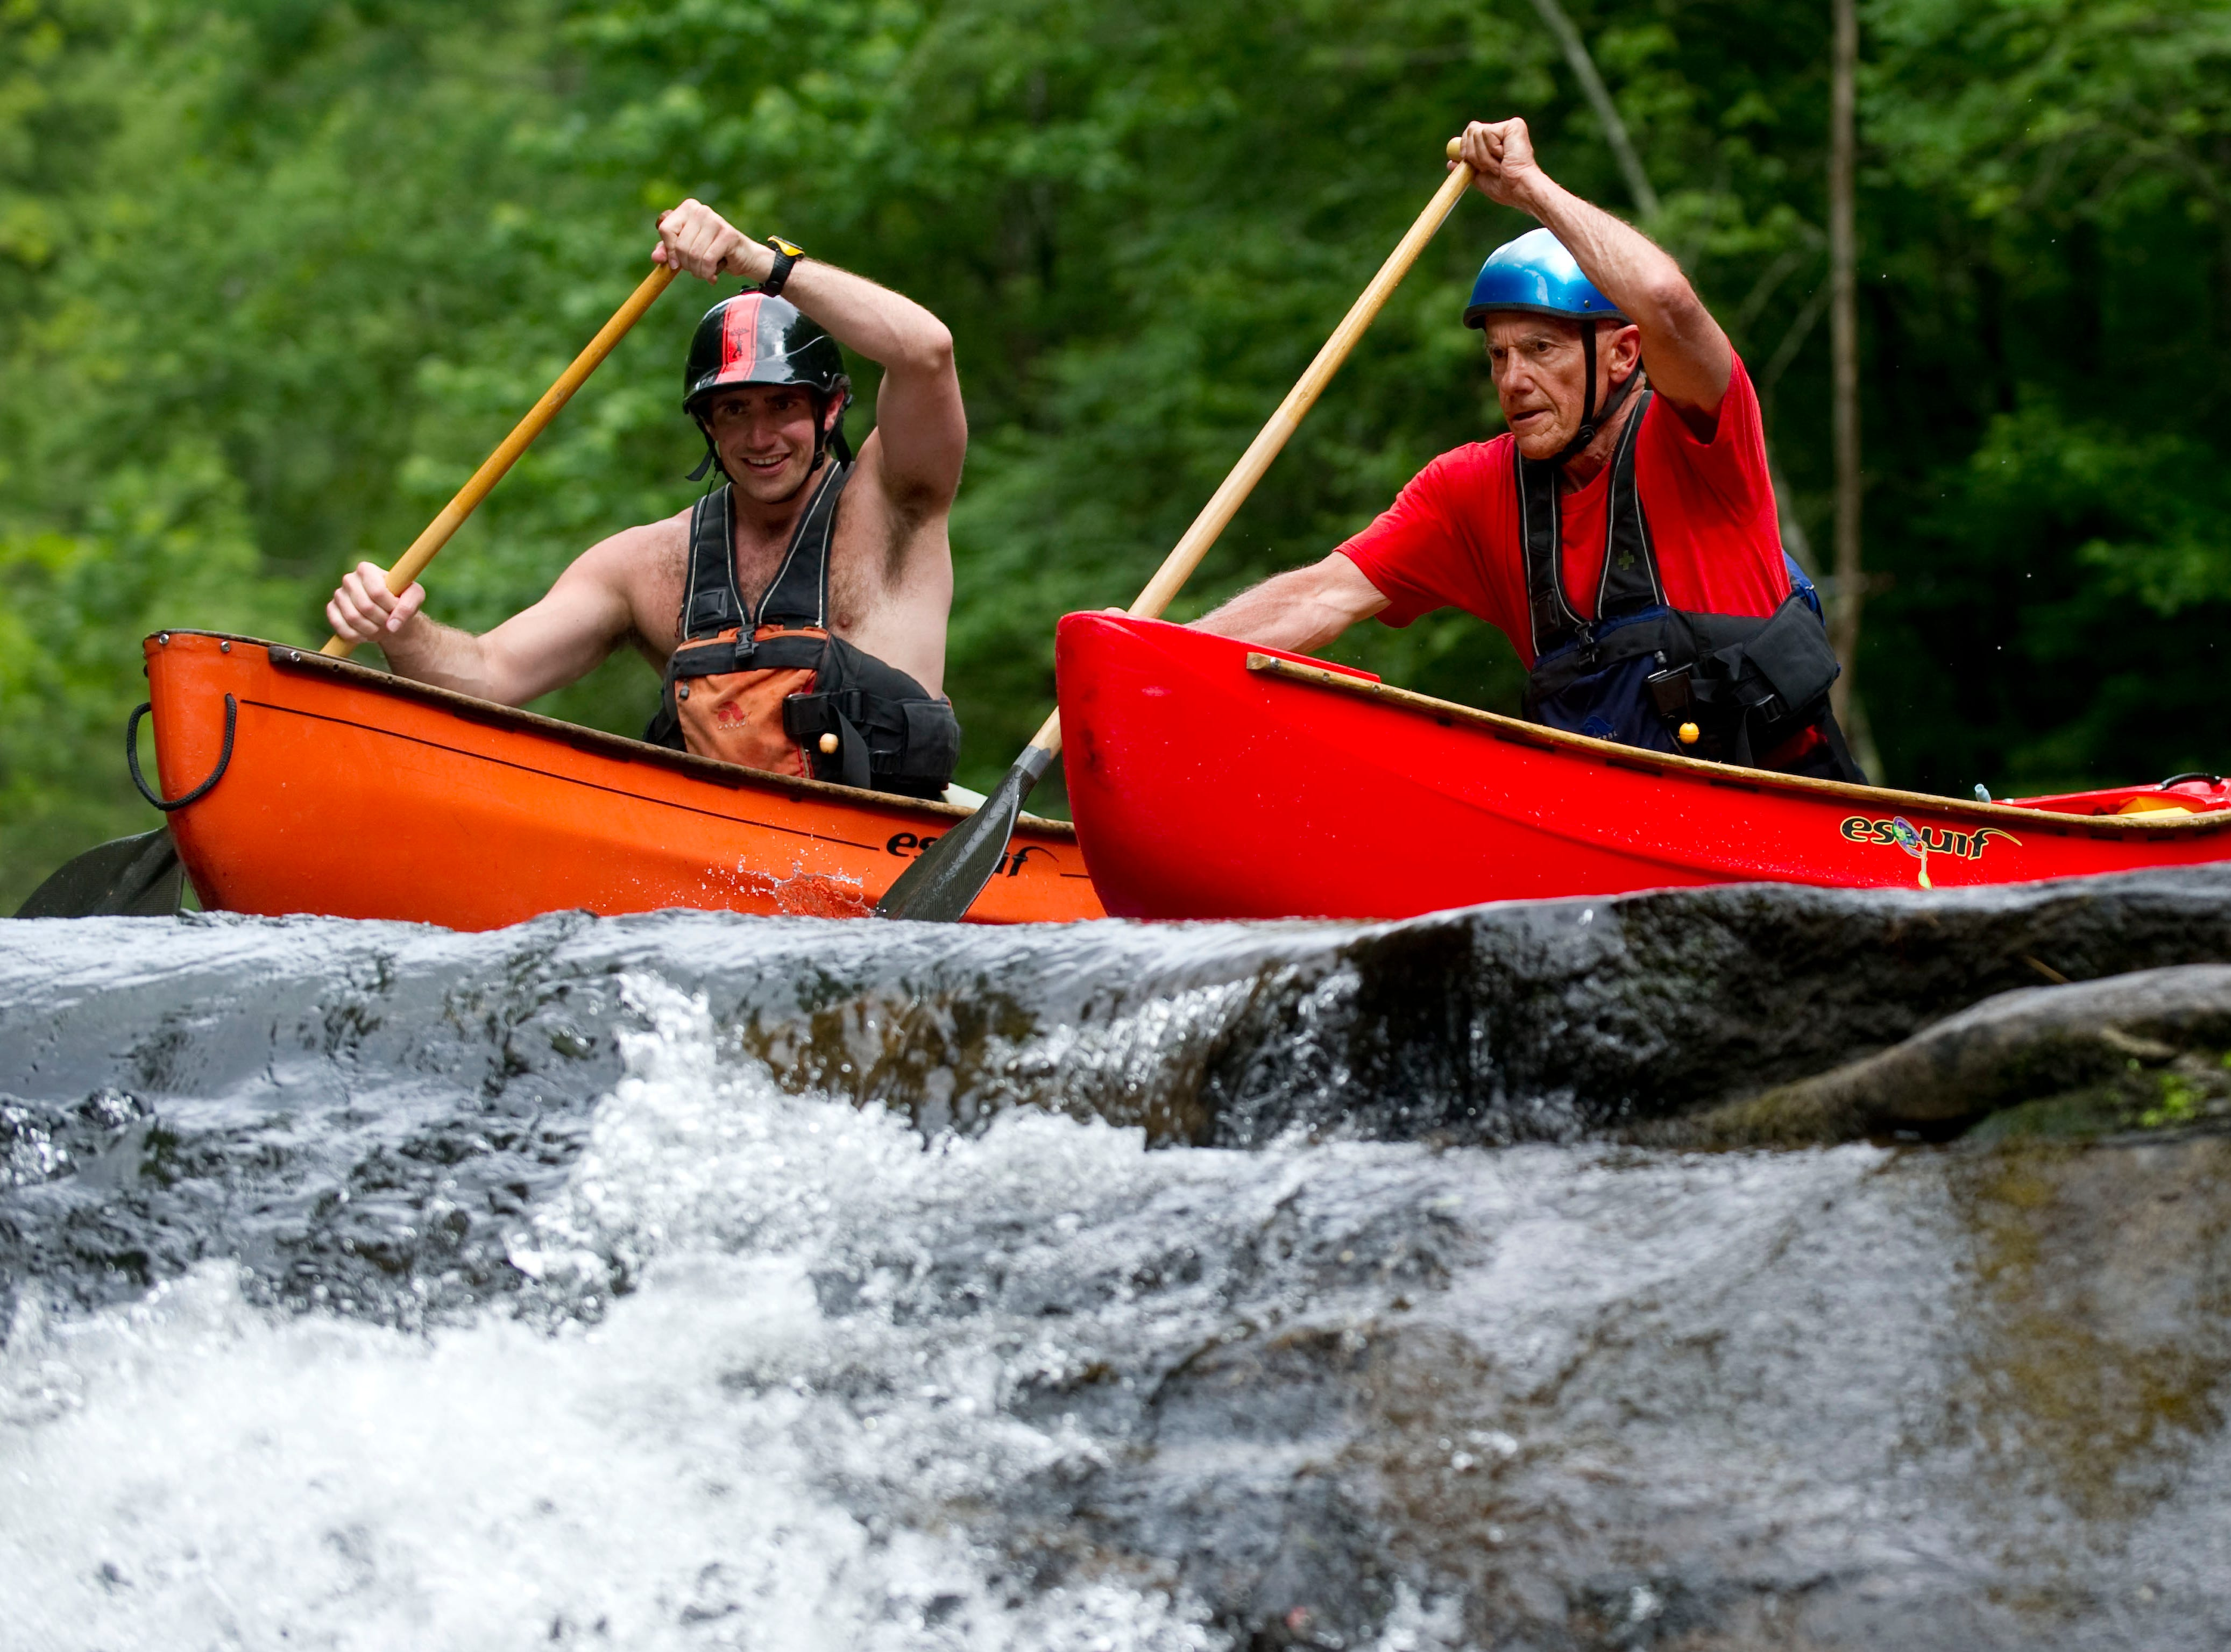 Charlie Tombras, CEO of The Tombras Group, right, and his son Dooley Tombras canoe on the Tellico River on Sunday, June 10, 2012.